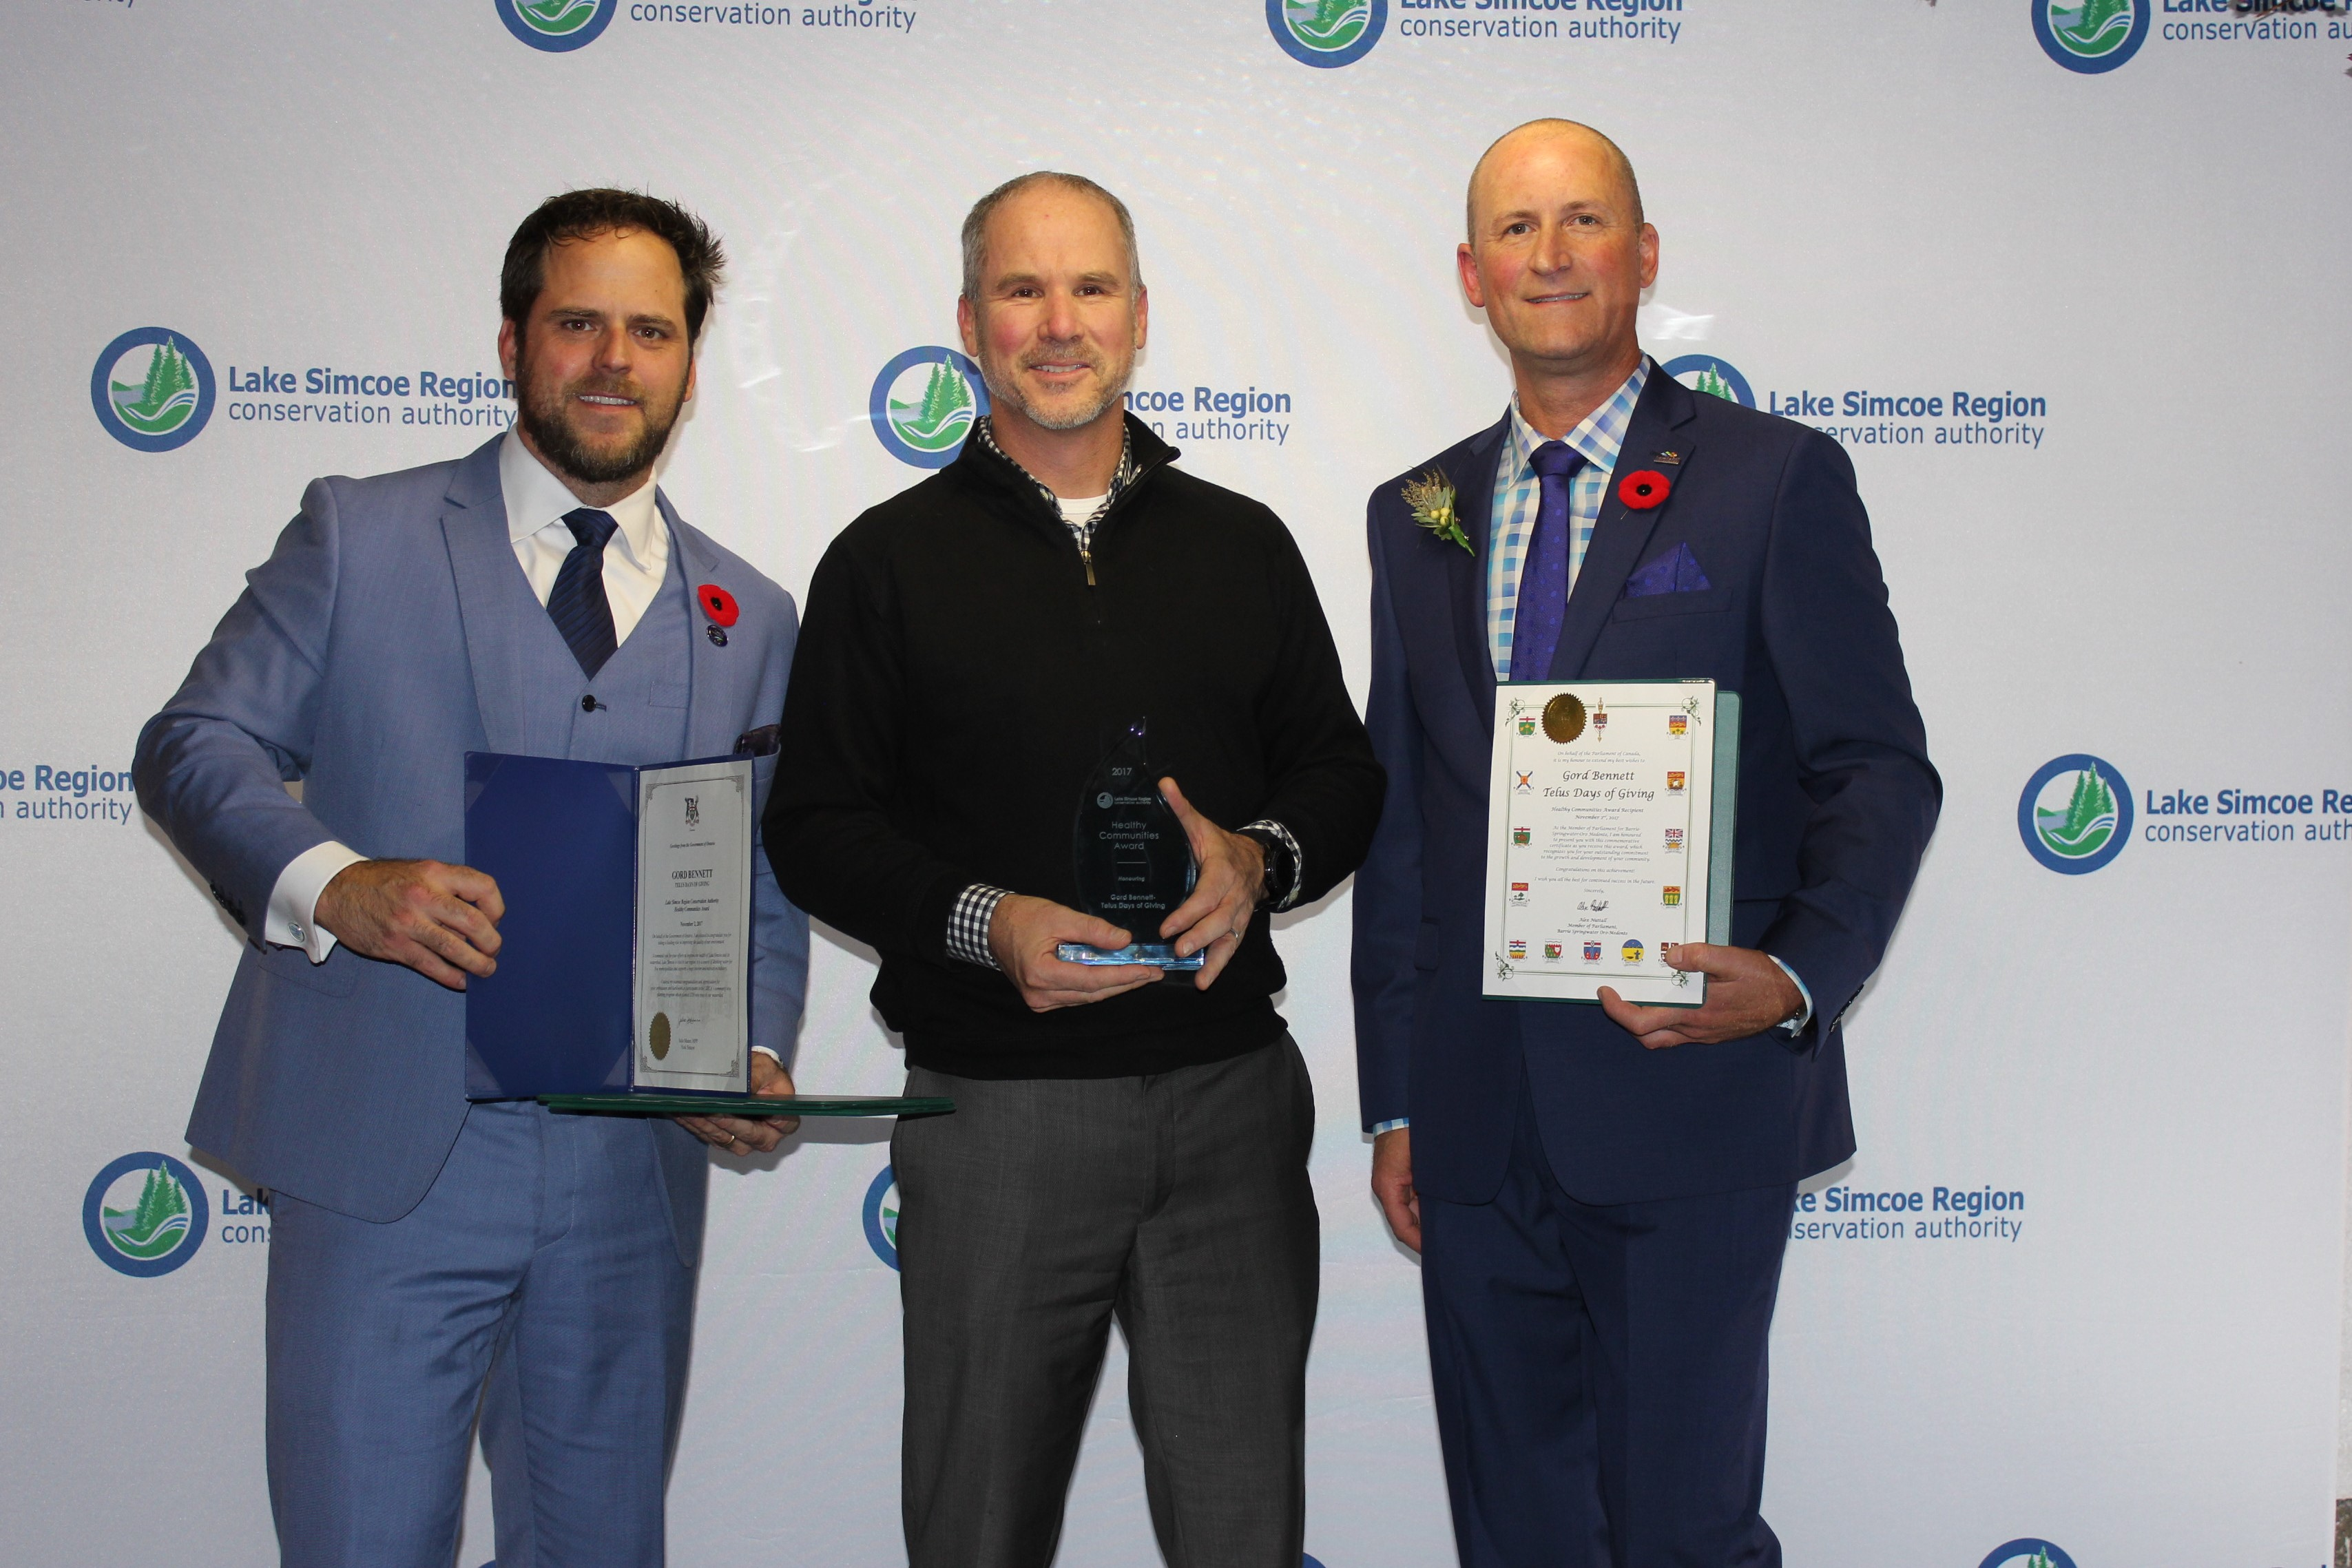 Healthy Communities Award - Gord Bennett